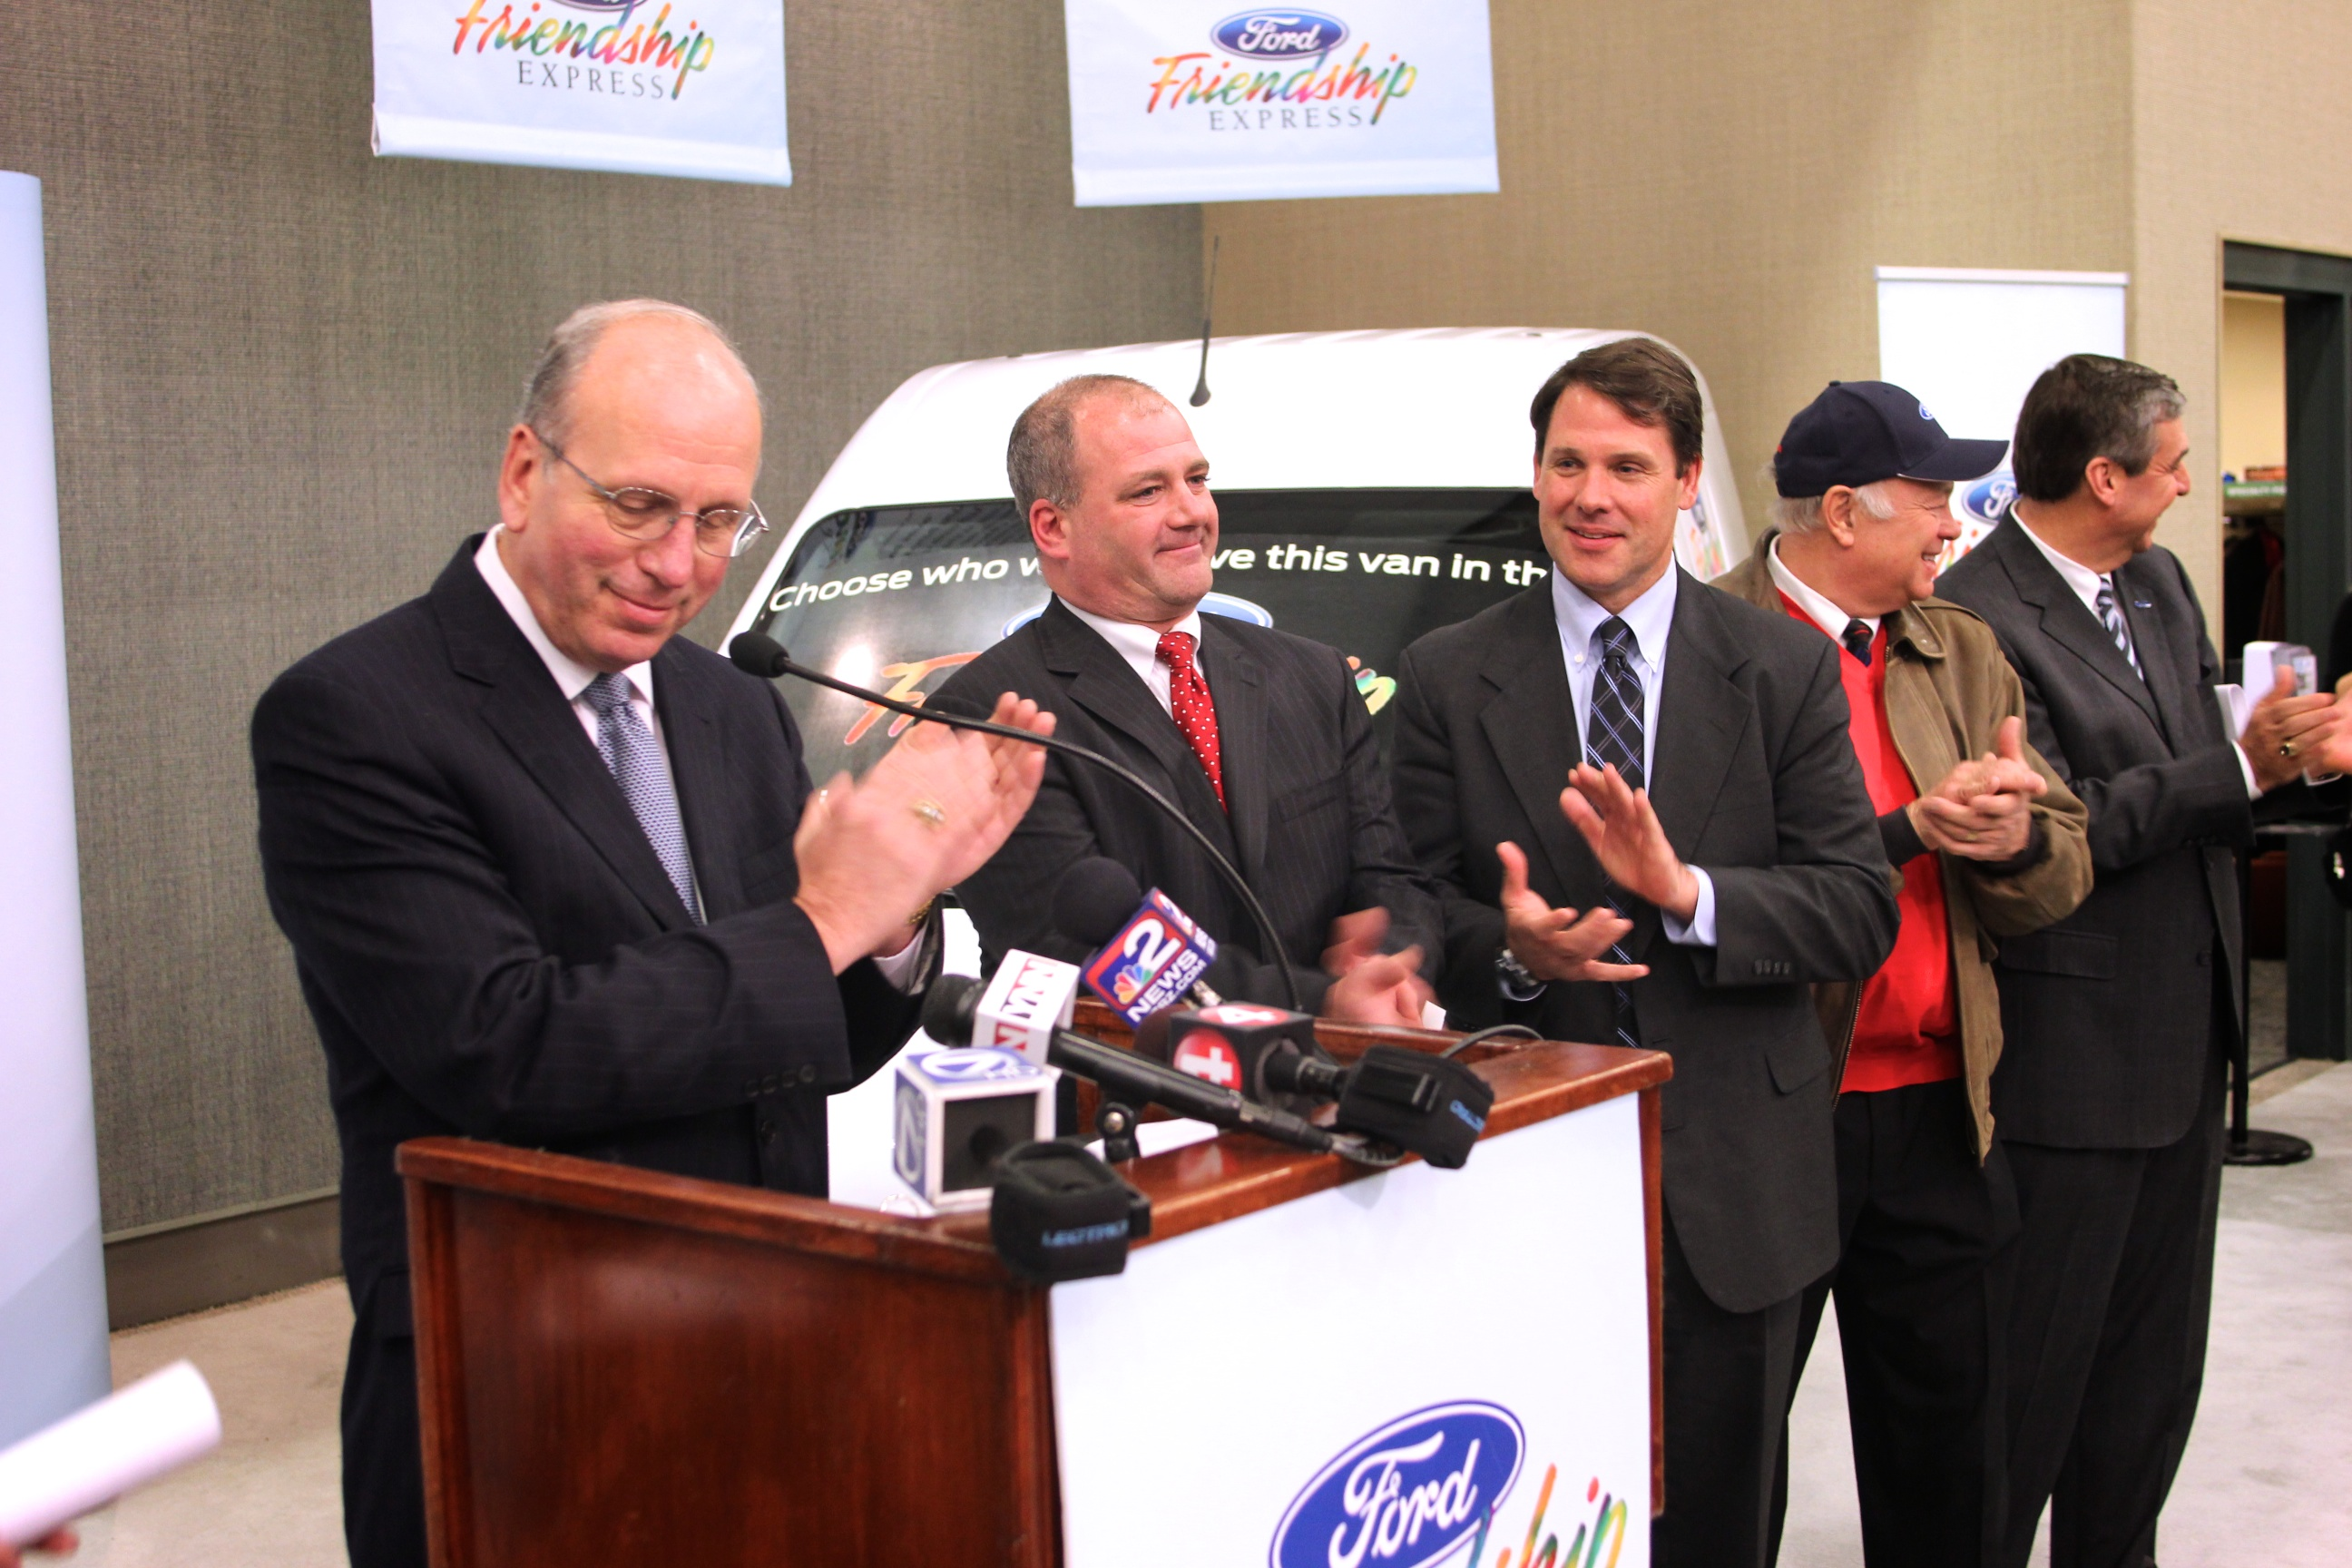 WNY Ford Dealers announce 2012 Ford Friendship Express van recipients at Buffalo Auto Show. (From left: Scott Bieler, chairman of Ford Friendship Express Selection Committee; Selection Committee: Peter Delacy, Frank Downing, and Carl Emerling; John Schuldt, Regional Manager for Ford Motor Company.